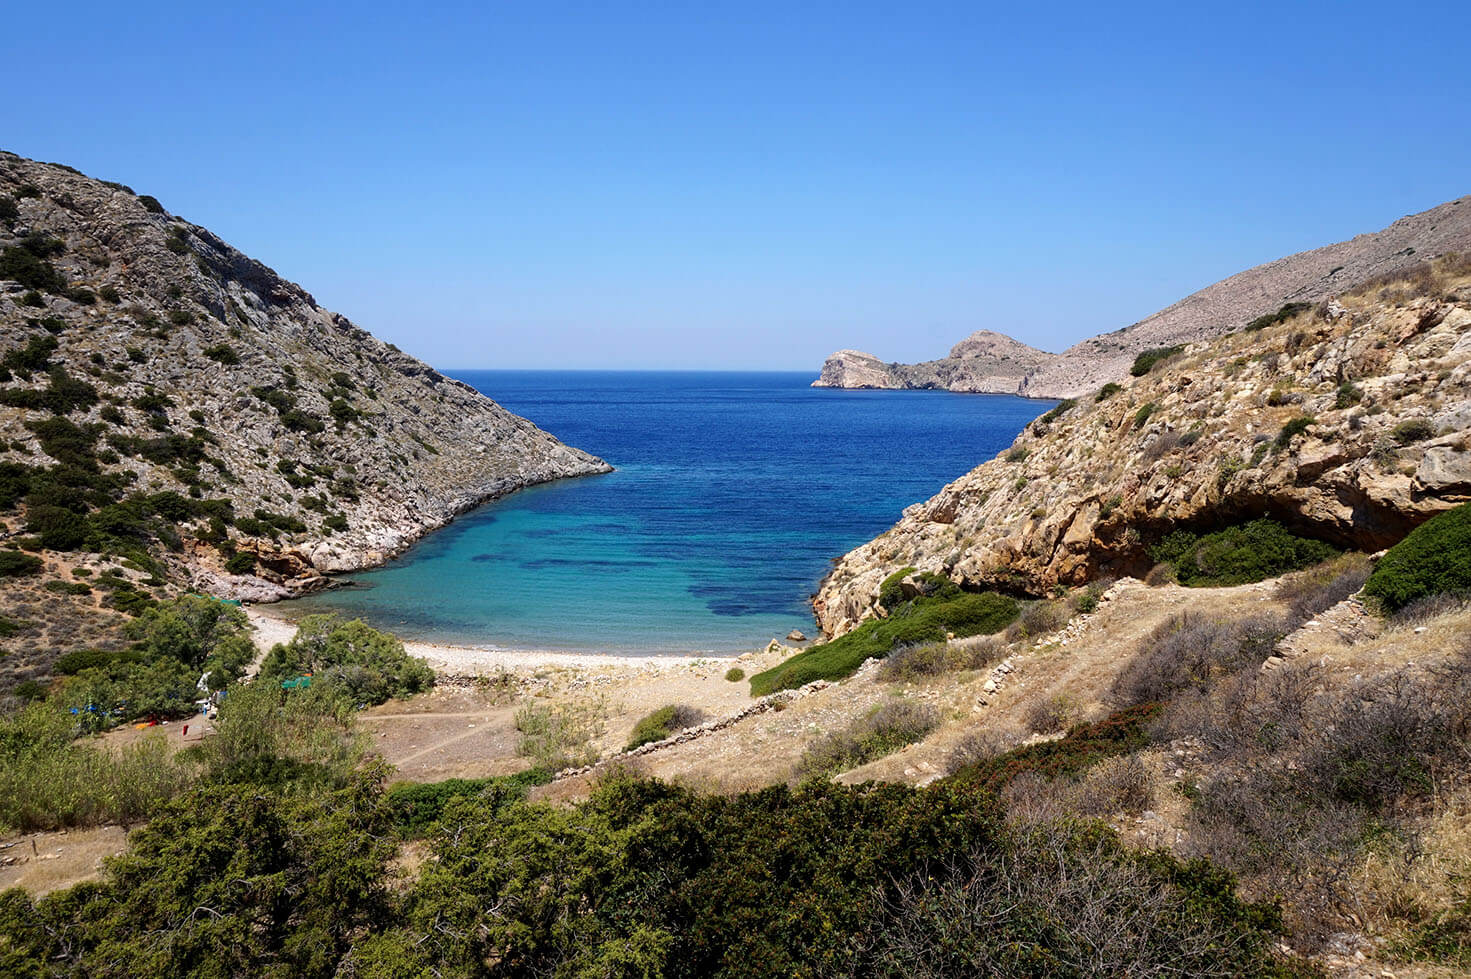 Fabulous beach in Syros